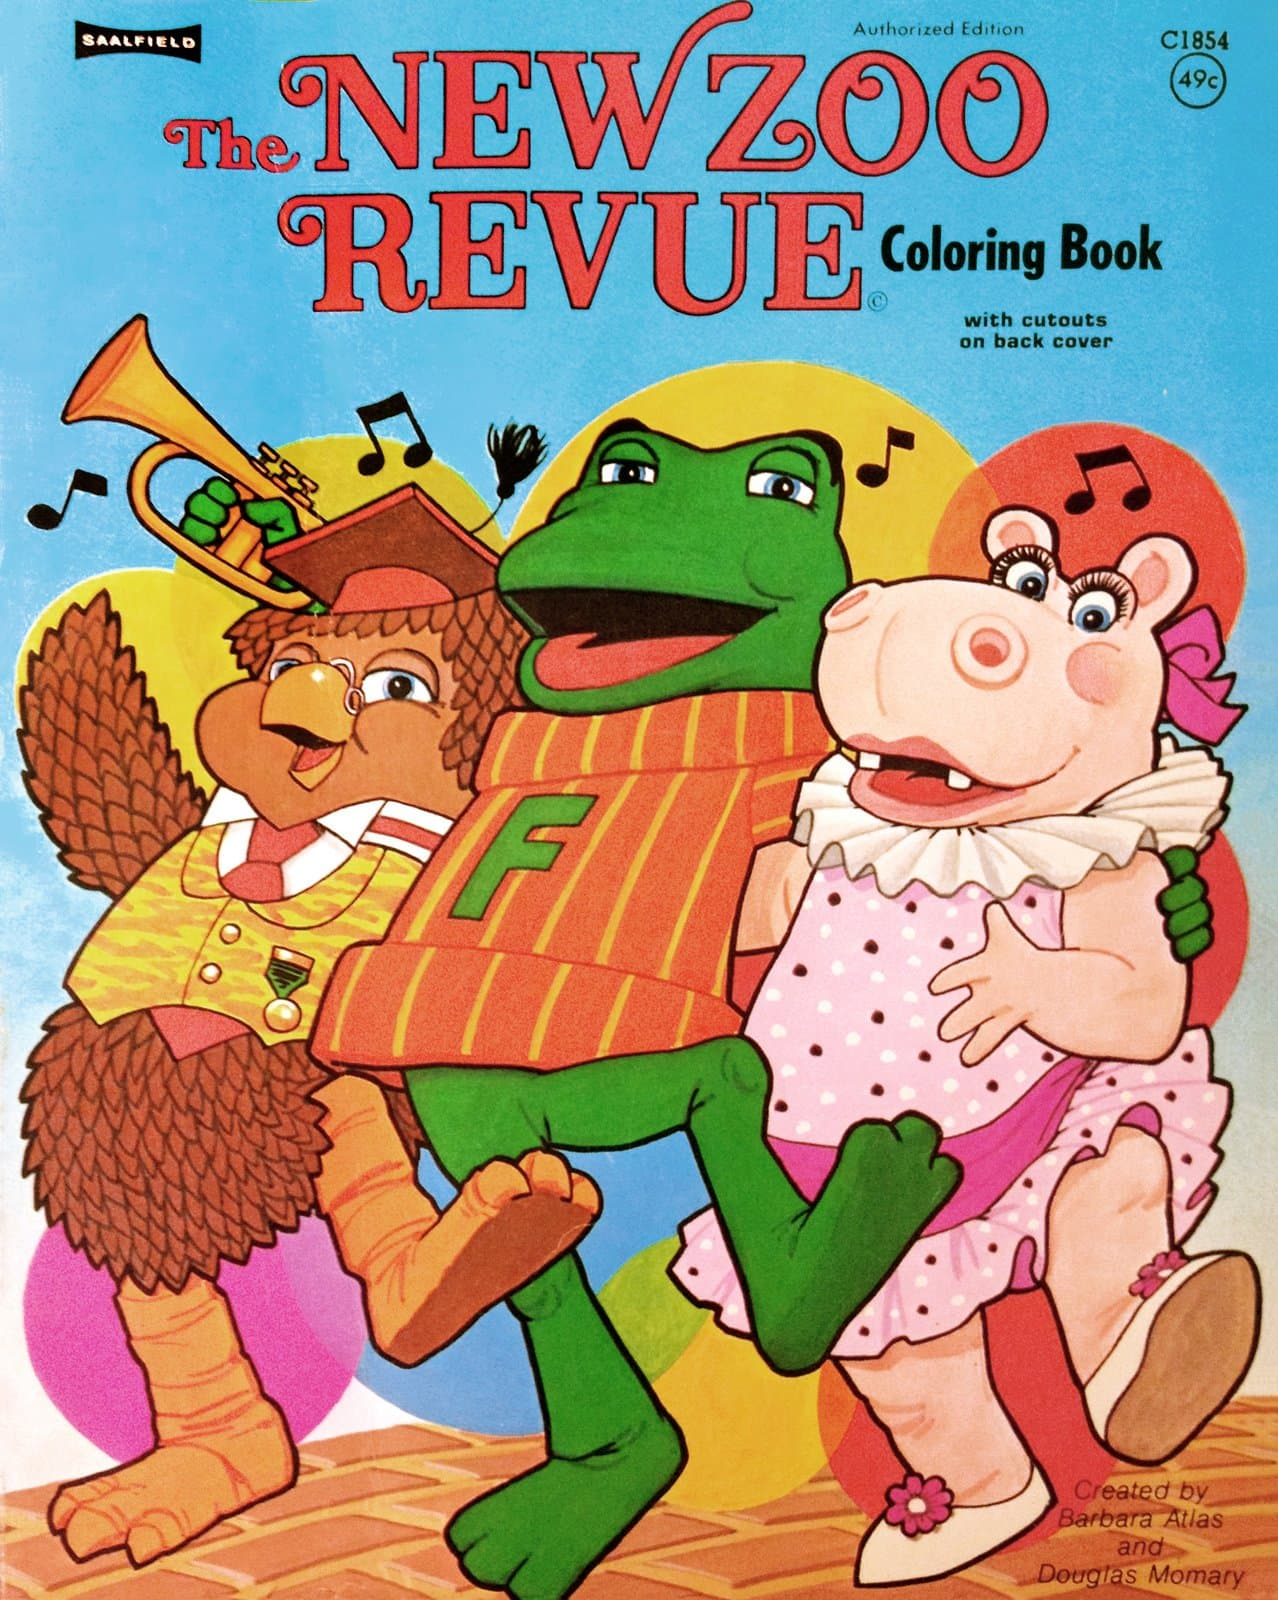 Vintage New Zoo Revue coloring book from the seventies